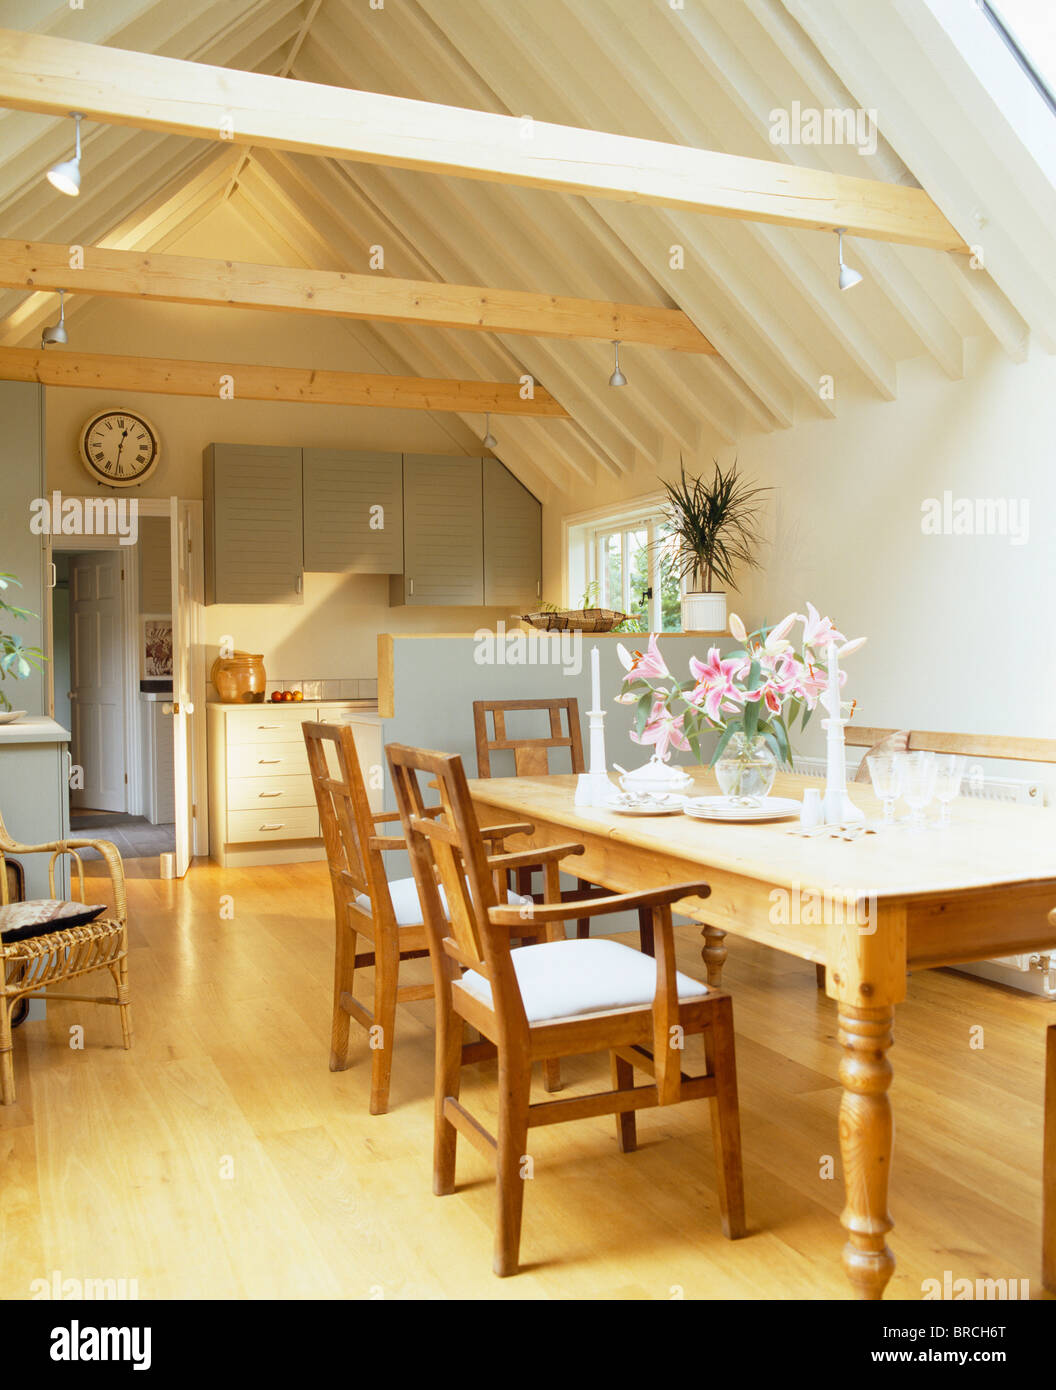 wooden chairs and pine table in traditional kitchen in small barn BRCH6T